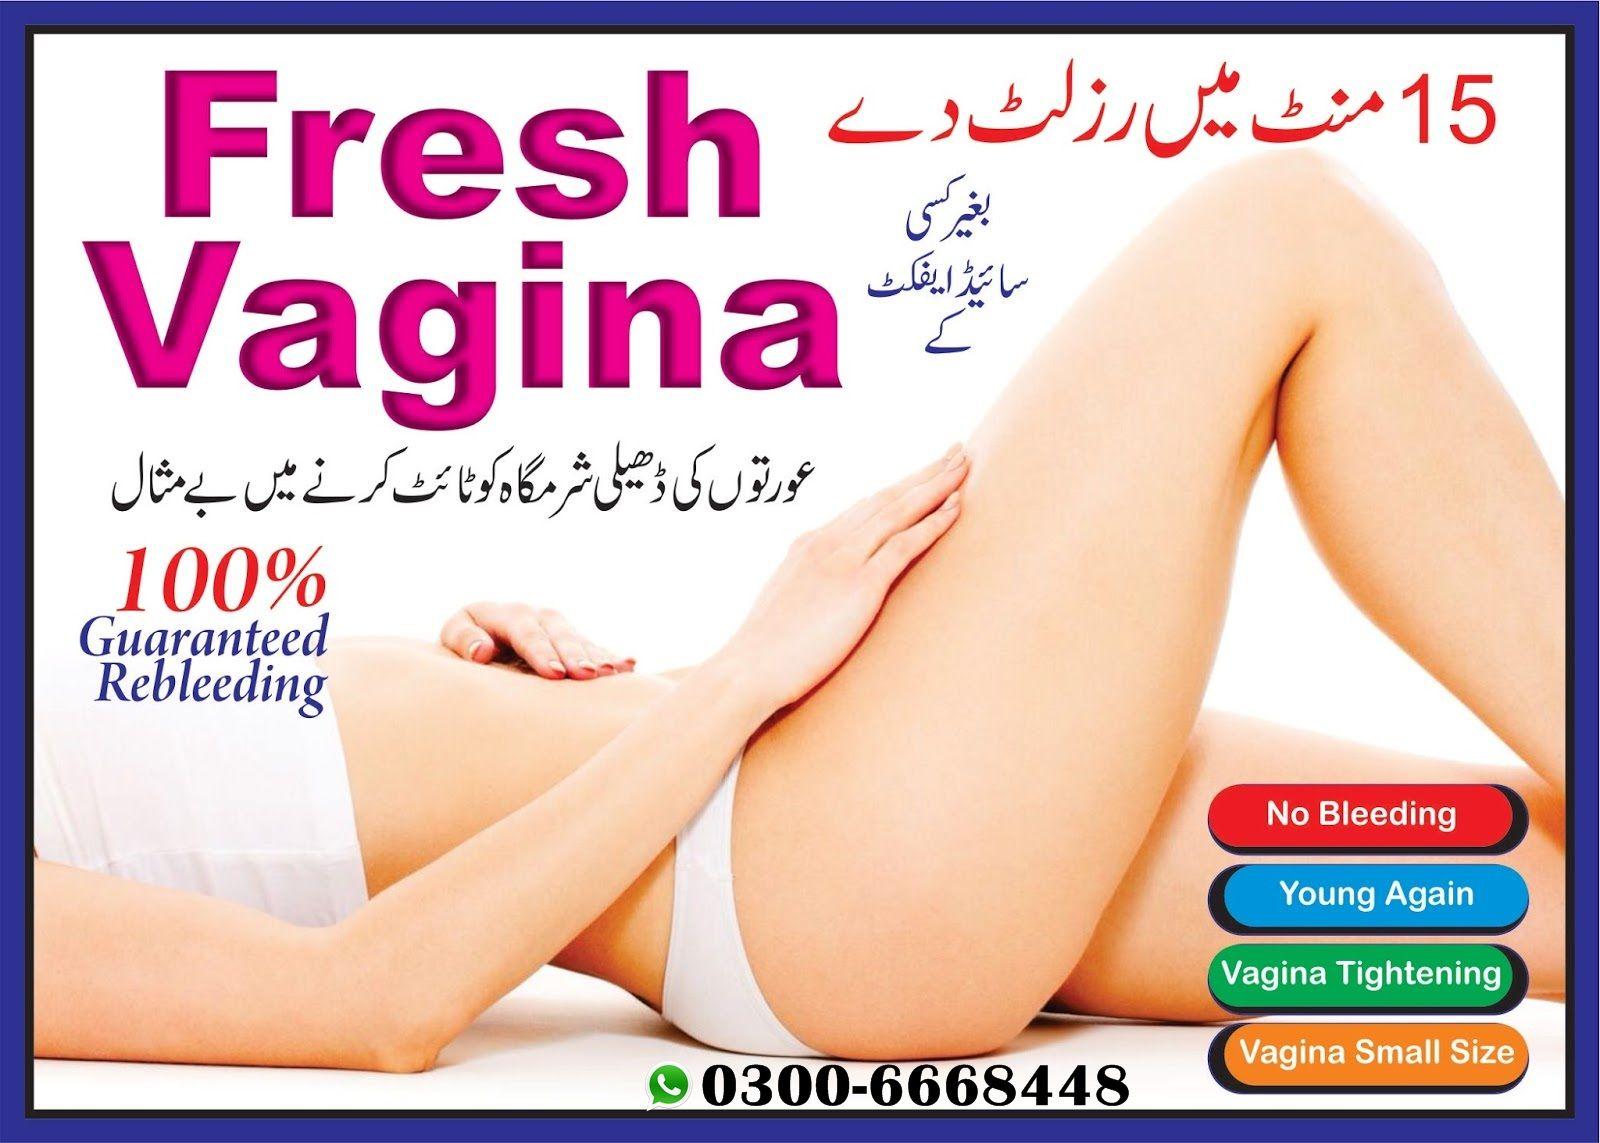 Globus Remedies Vaginal Tightening Cream